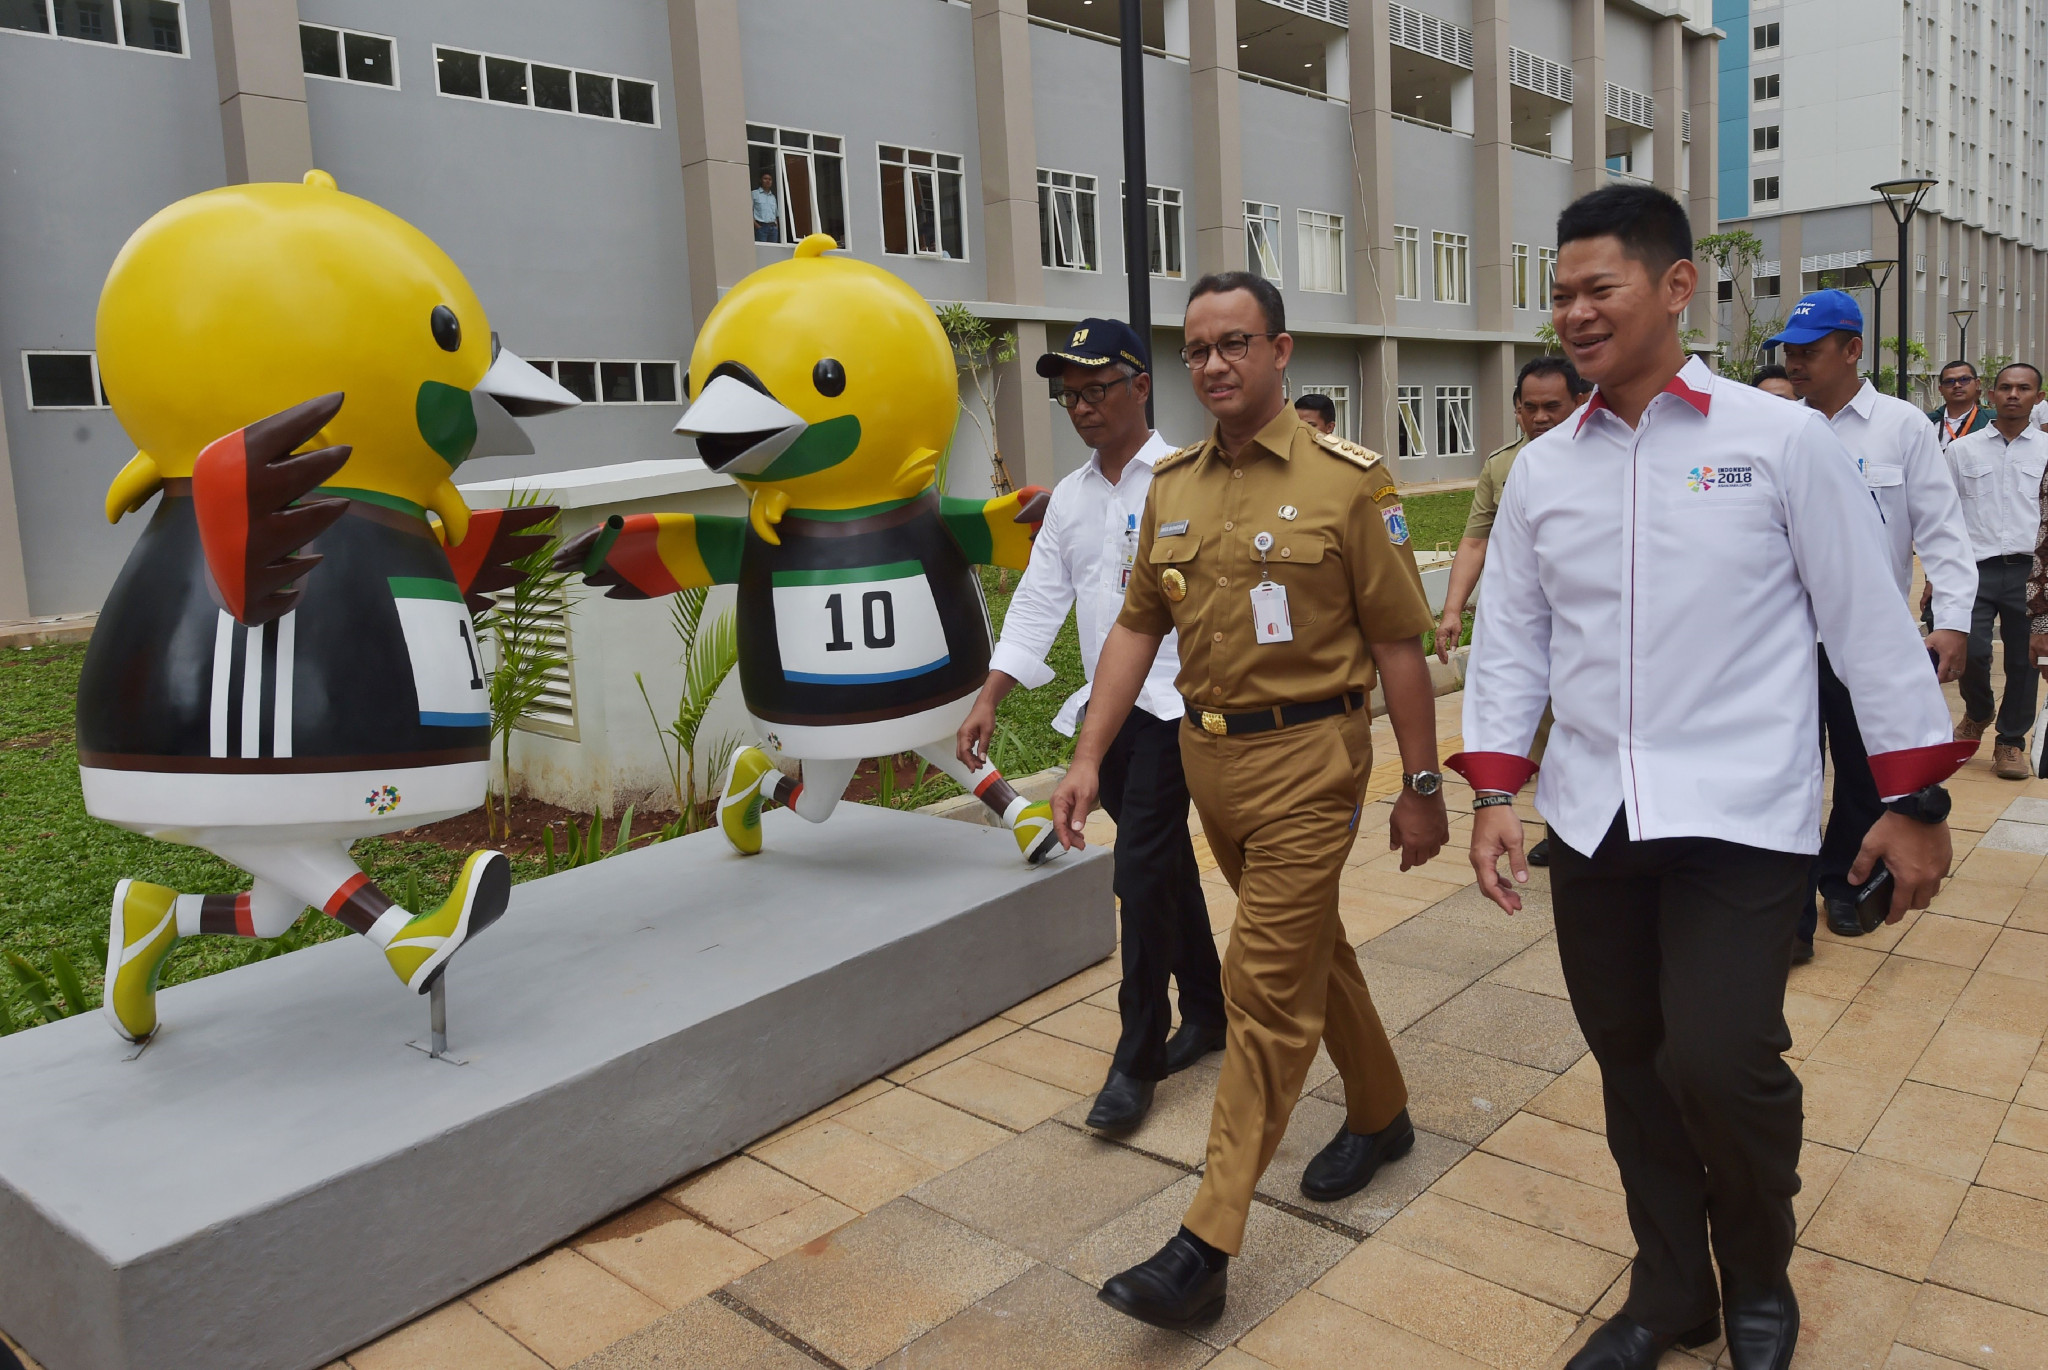 Indonesian Olympic Committee insists country's bid for 2032 Olympics focusing on Jakarta